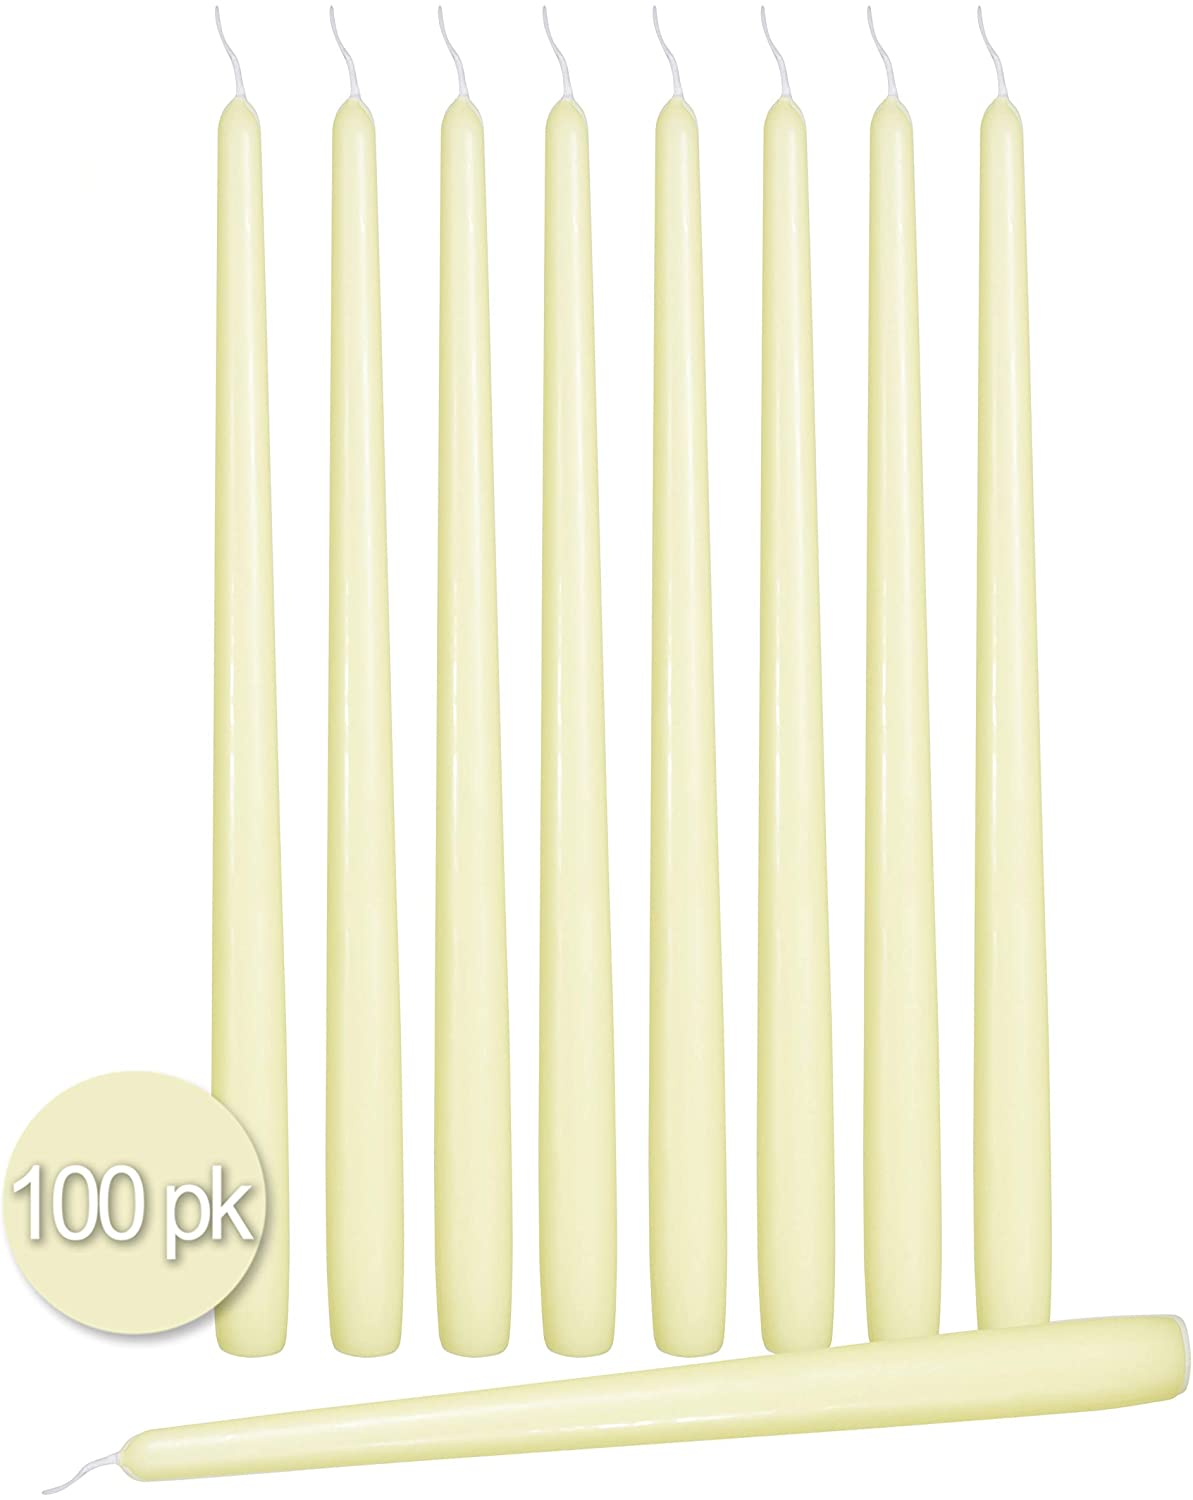 Ner Mitzvah 100 Pack Tall Taper Candles - 10 Inch Ivory Dripless, Unscented Dinner Candle - Paraffin Wax with Cotton Wicks - 8 Hour Burn Time